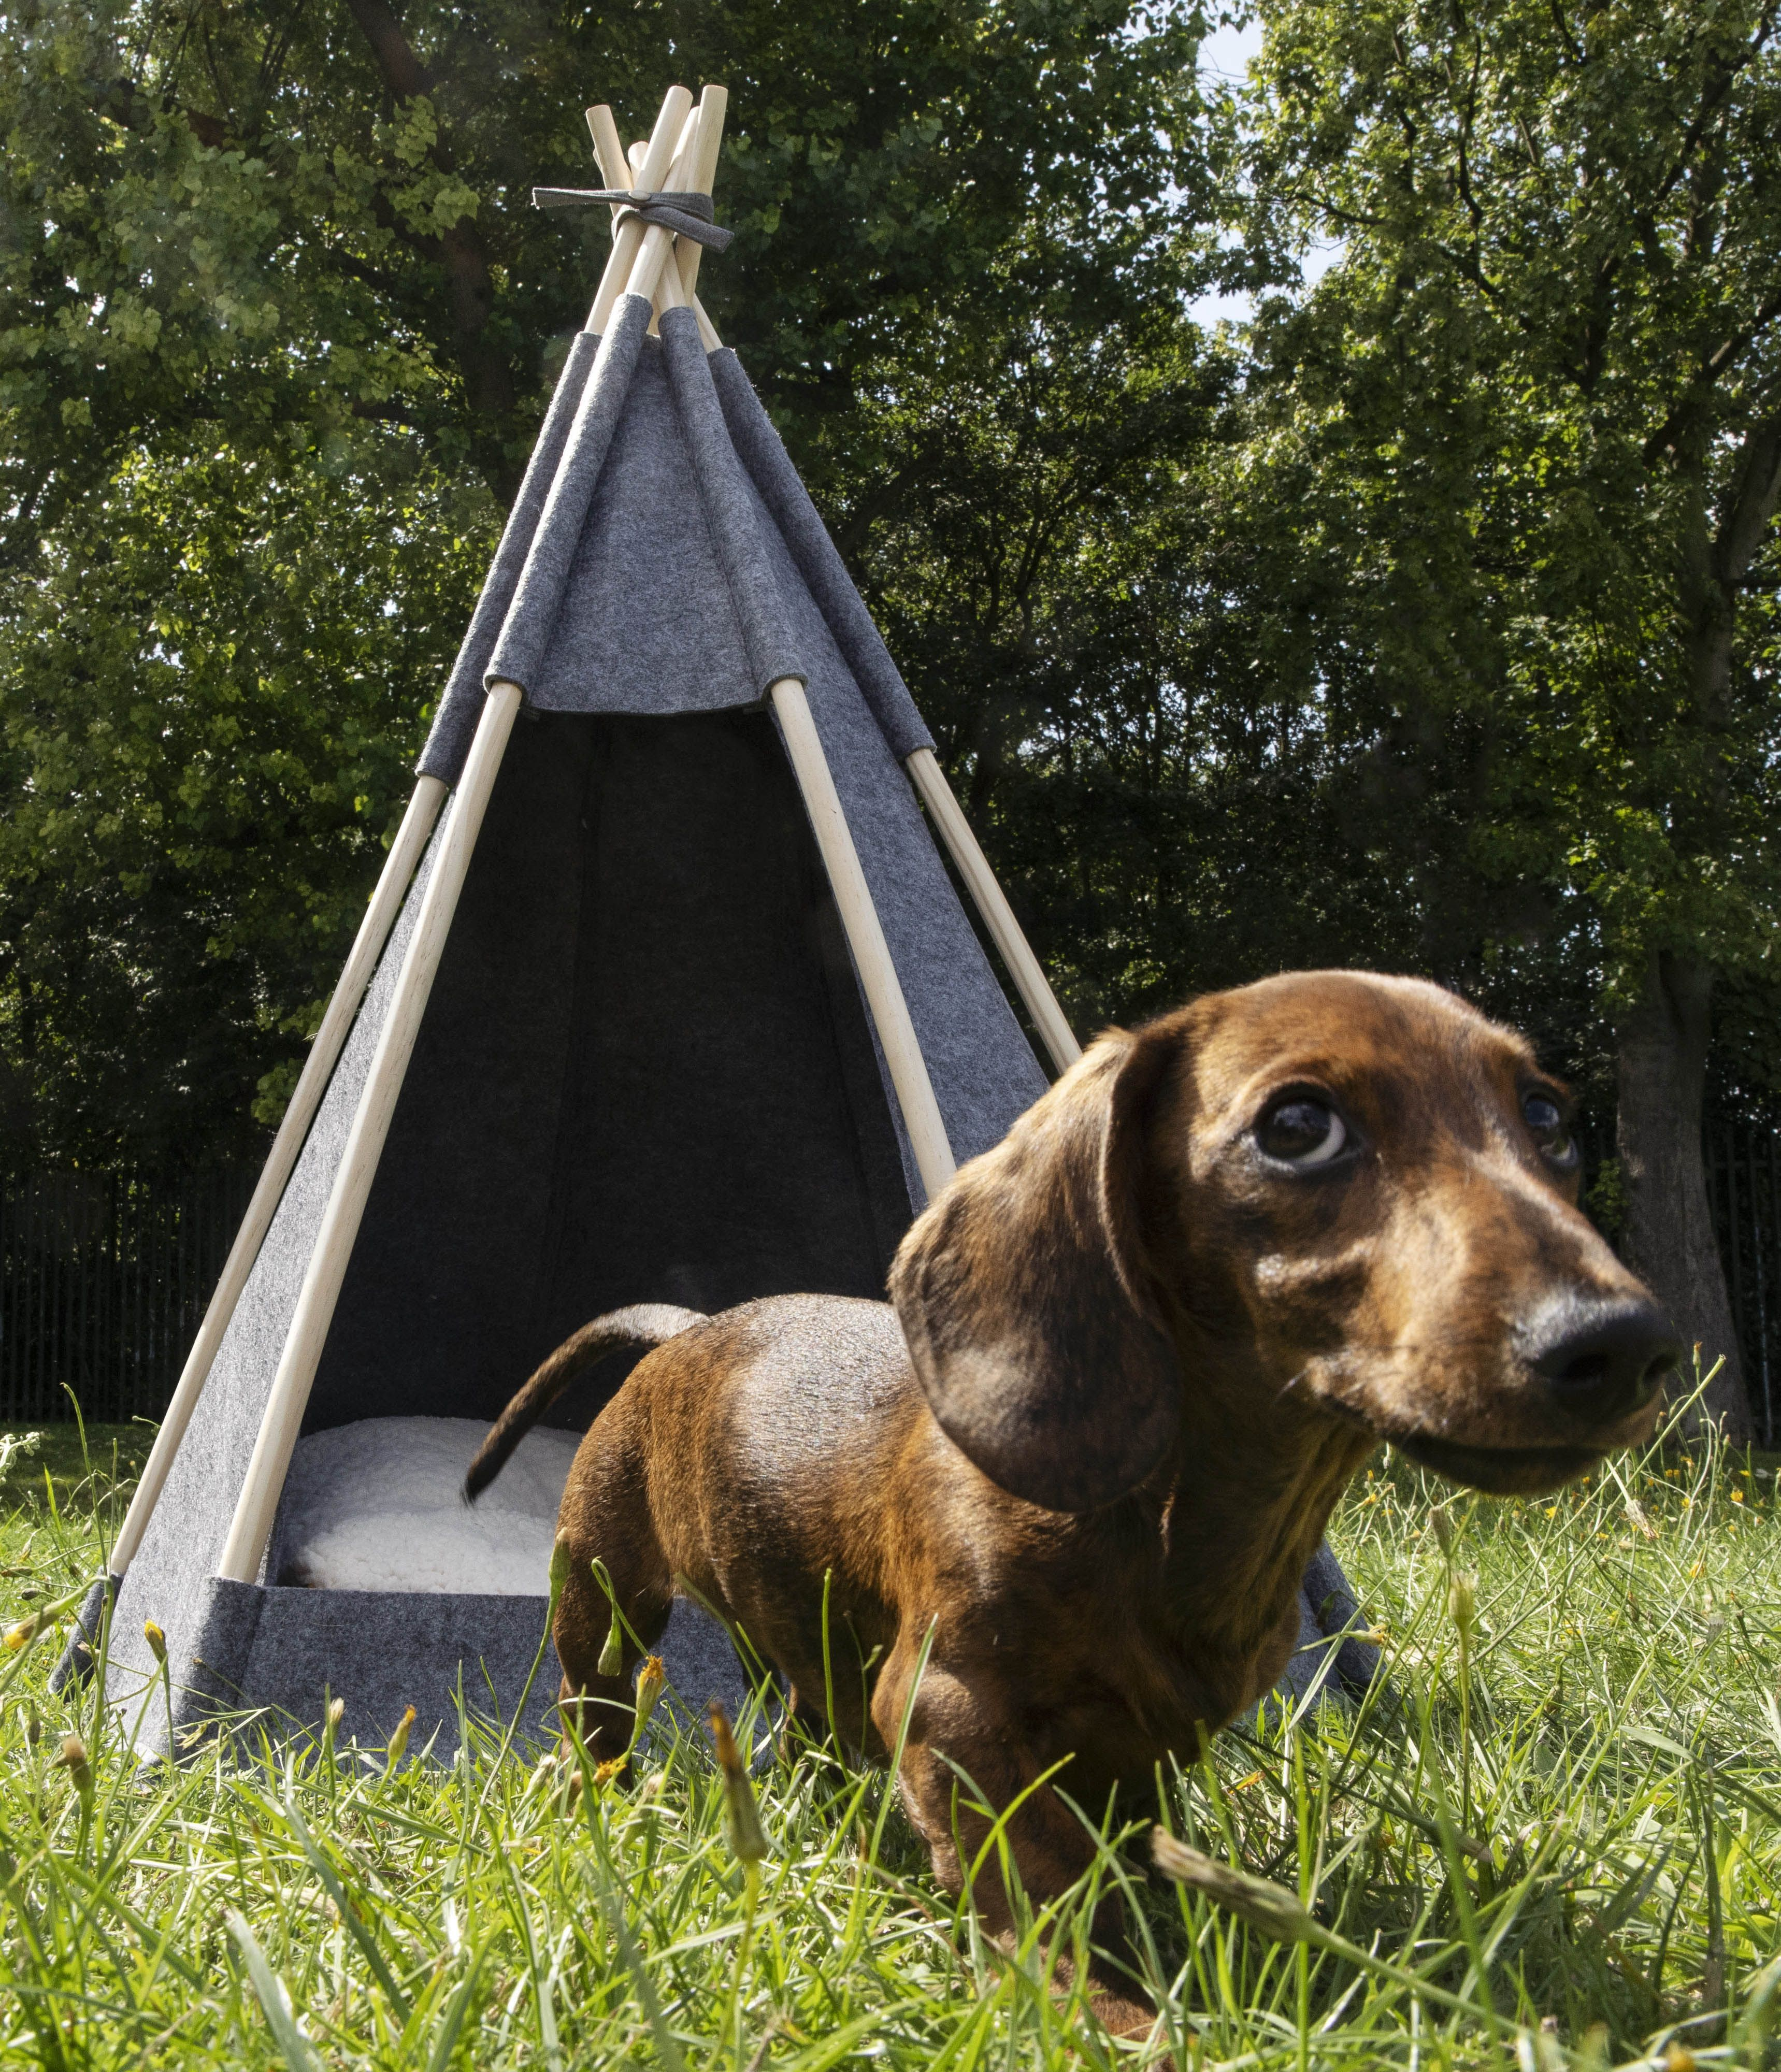 MADE just released a teepee for dogs that's both sweet and stylish